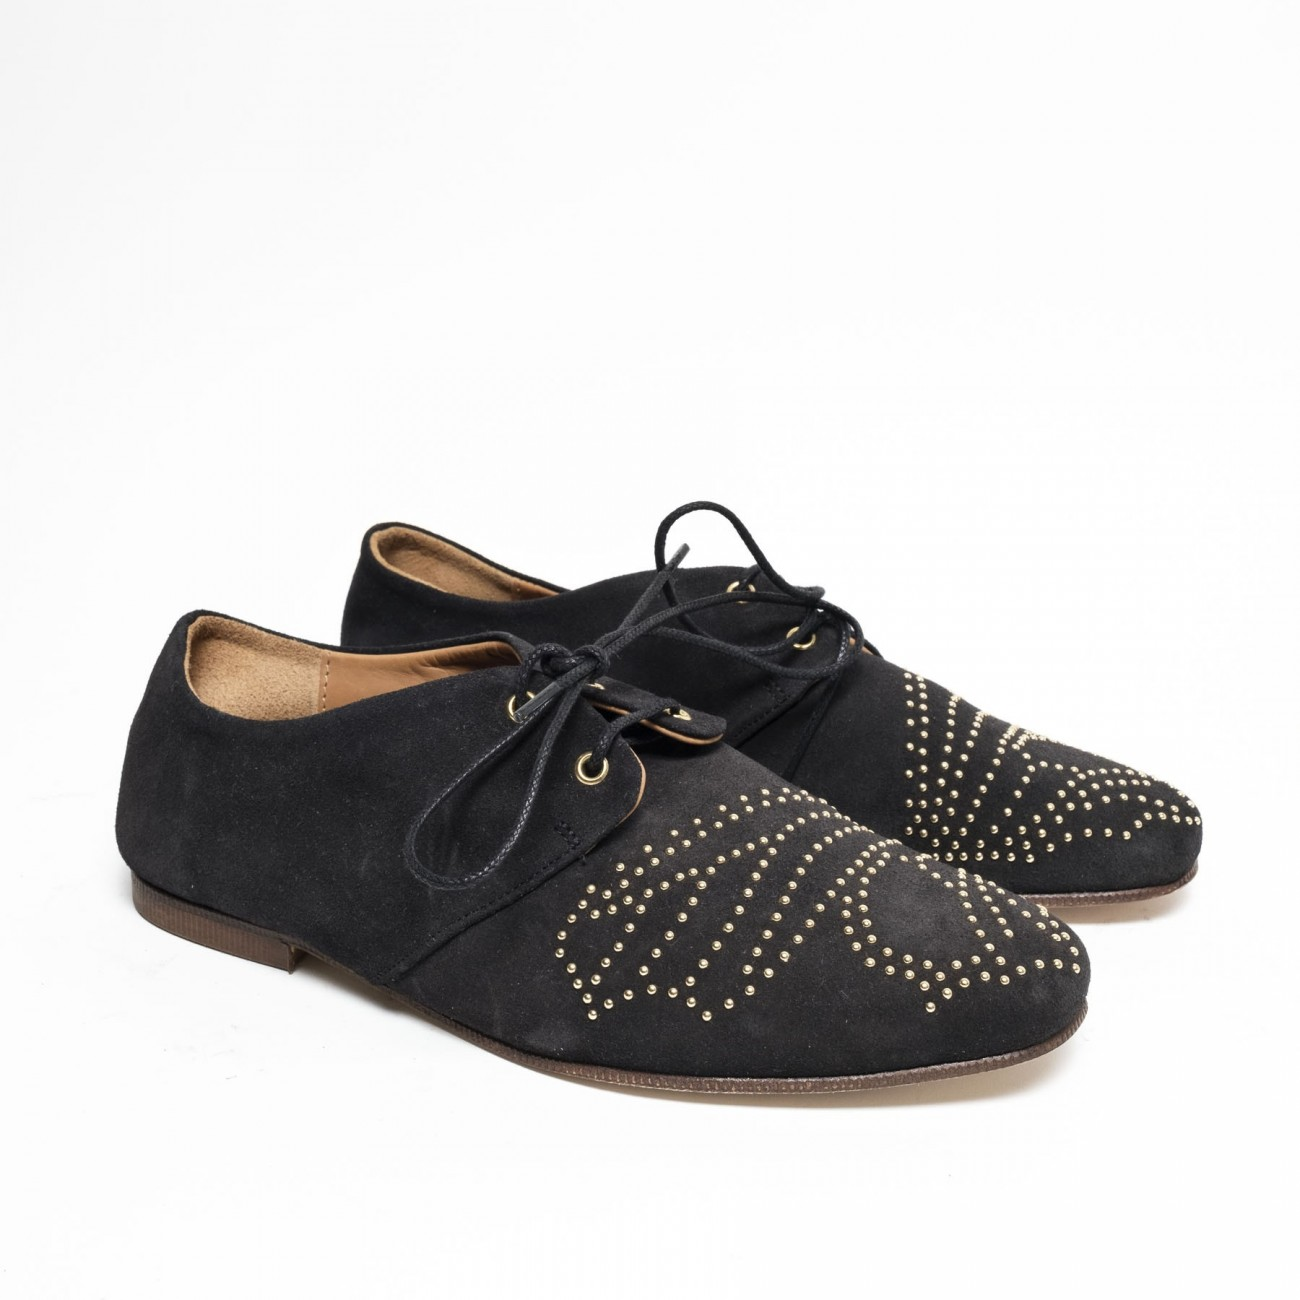 Wilma Suede Black - Size 38